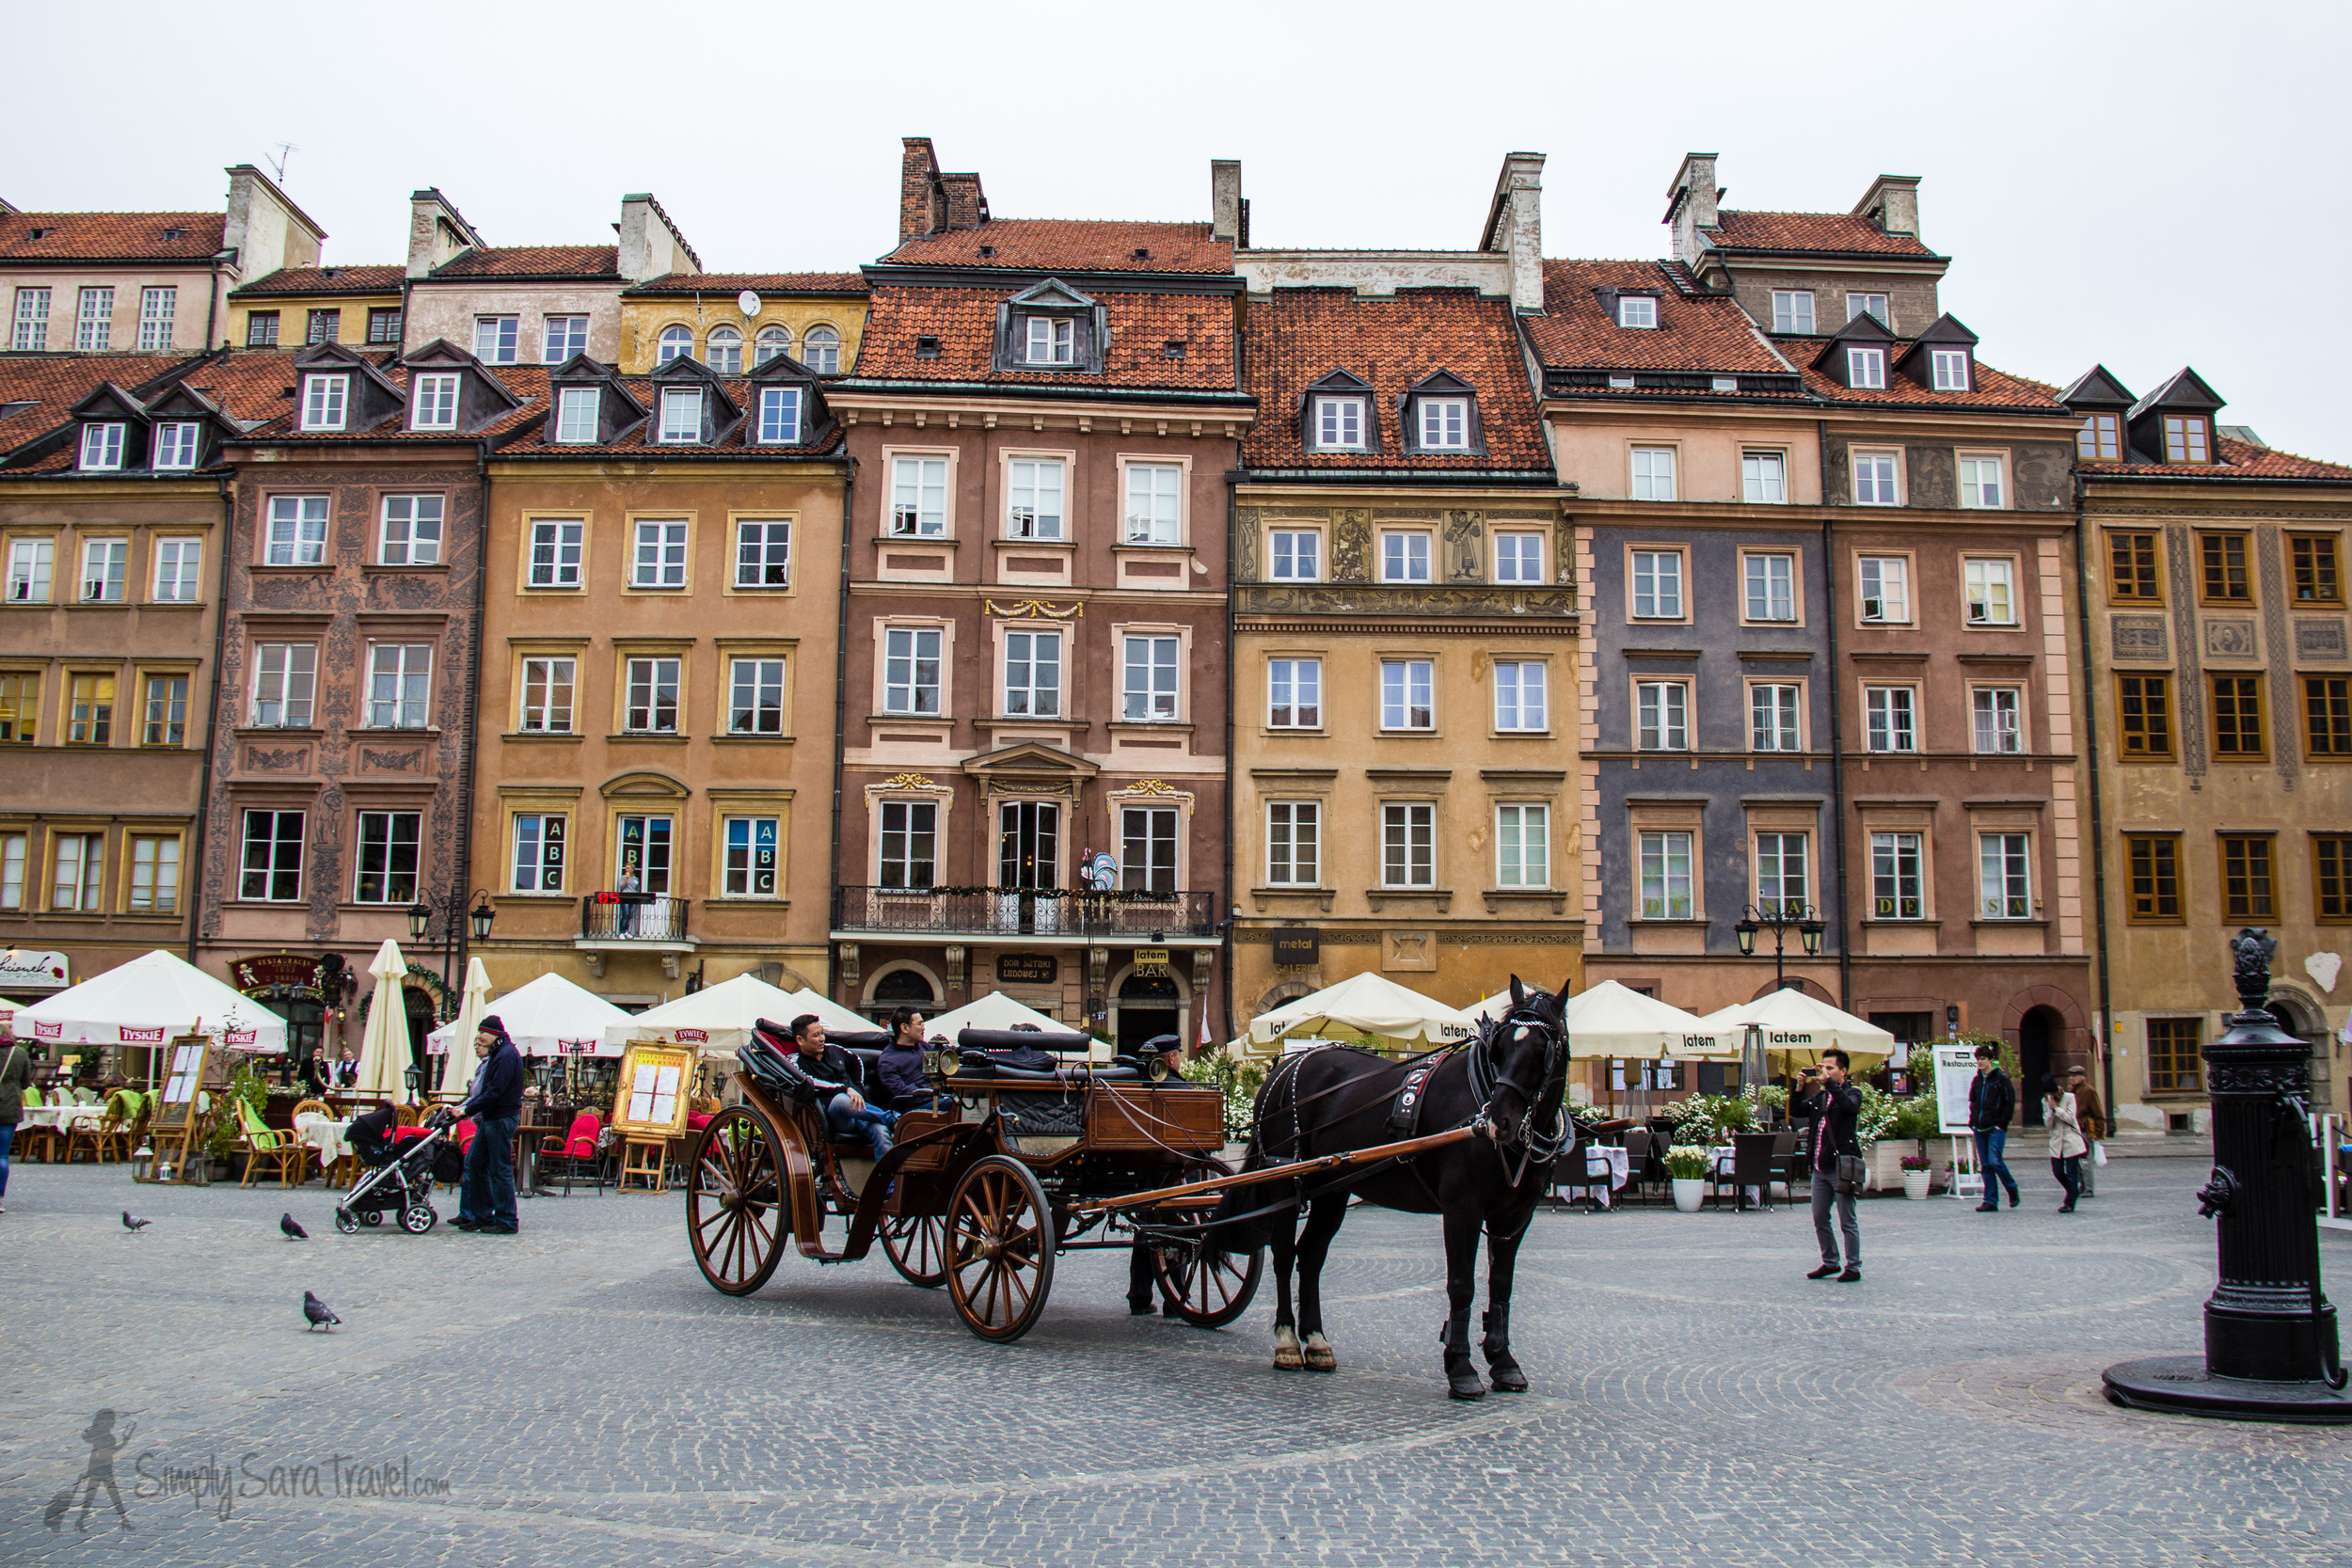 Warsaw's Old Town may be rebuilt, but it's as charming as ever!